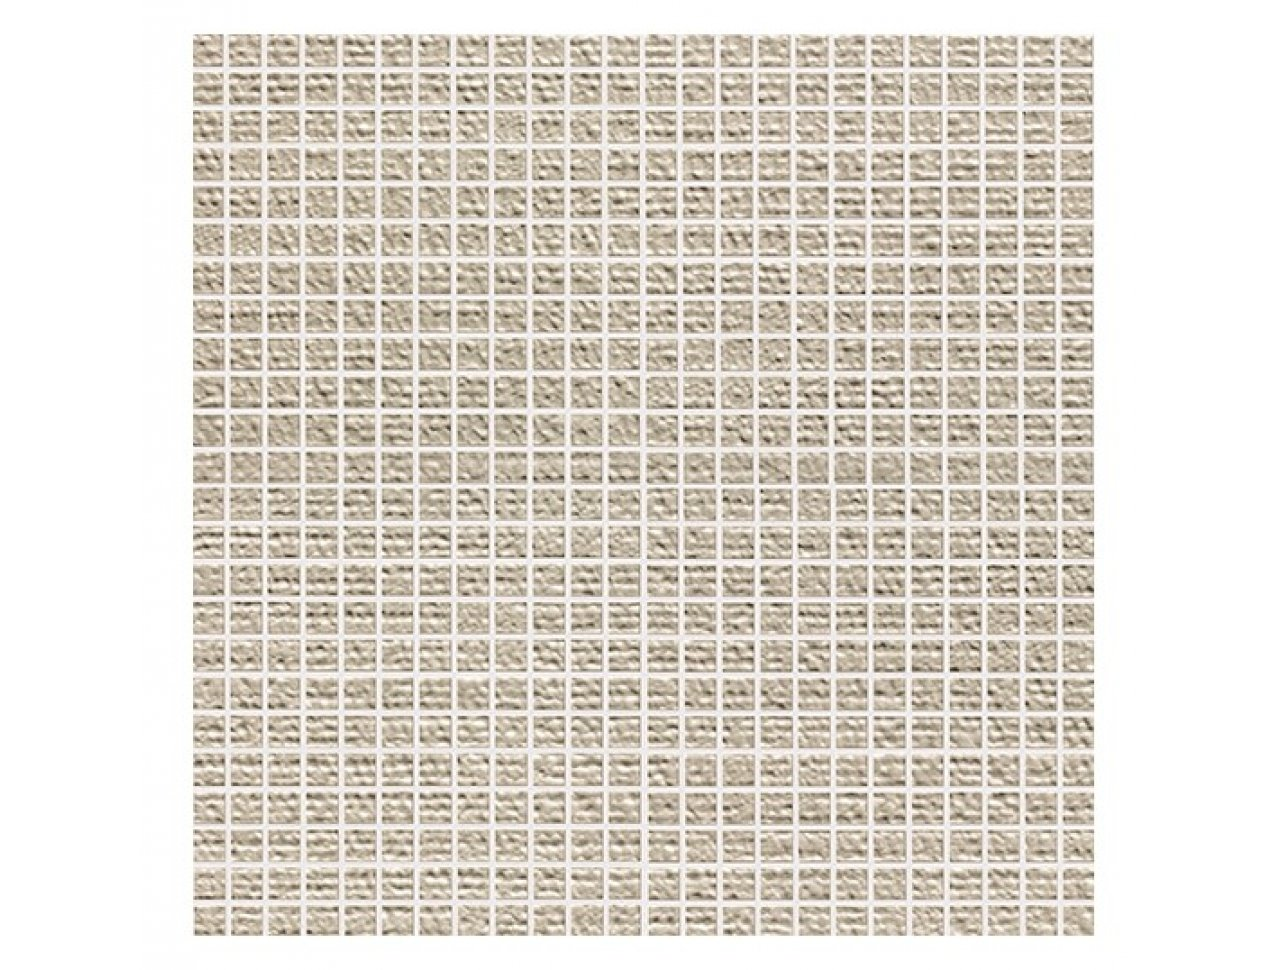 Мозаика FAP Color Now Tortora Micromosaico Dot 30.5 x 30.5 см, Арт. fMTT